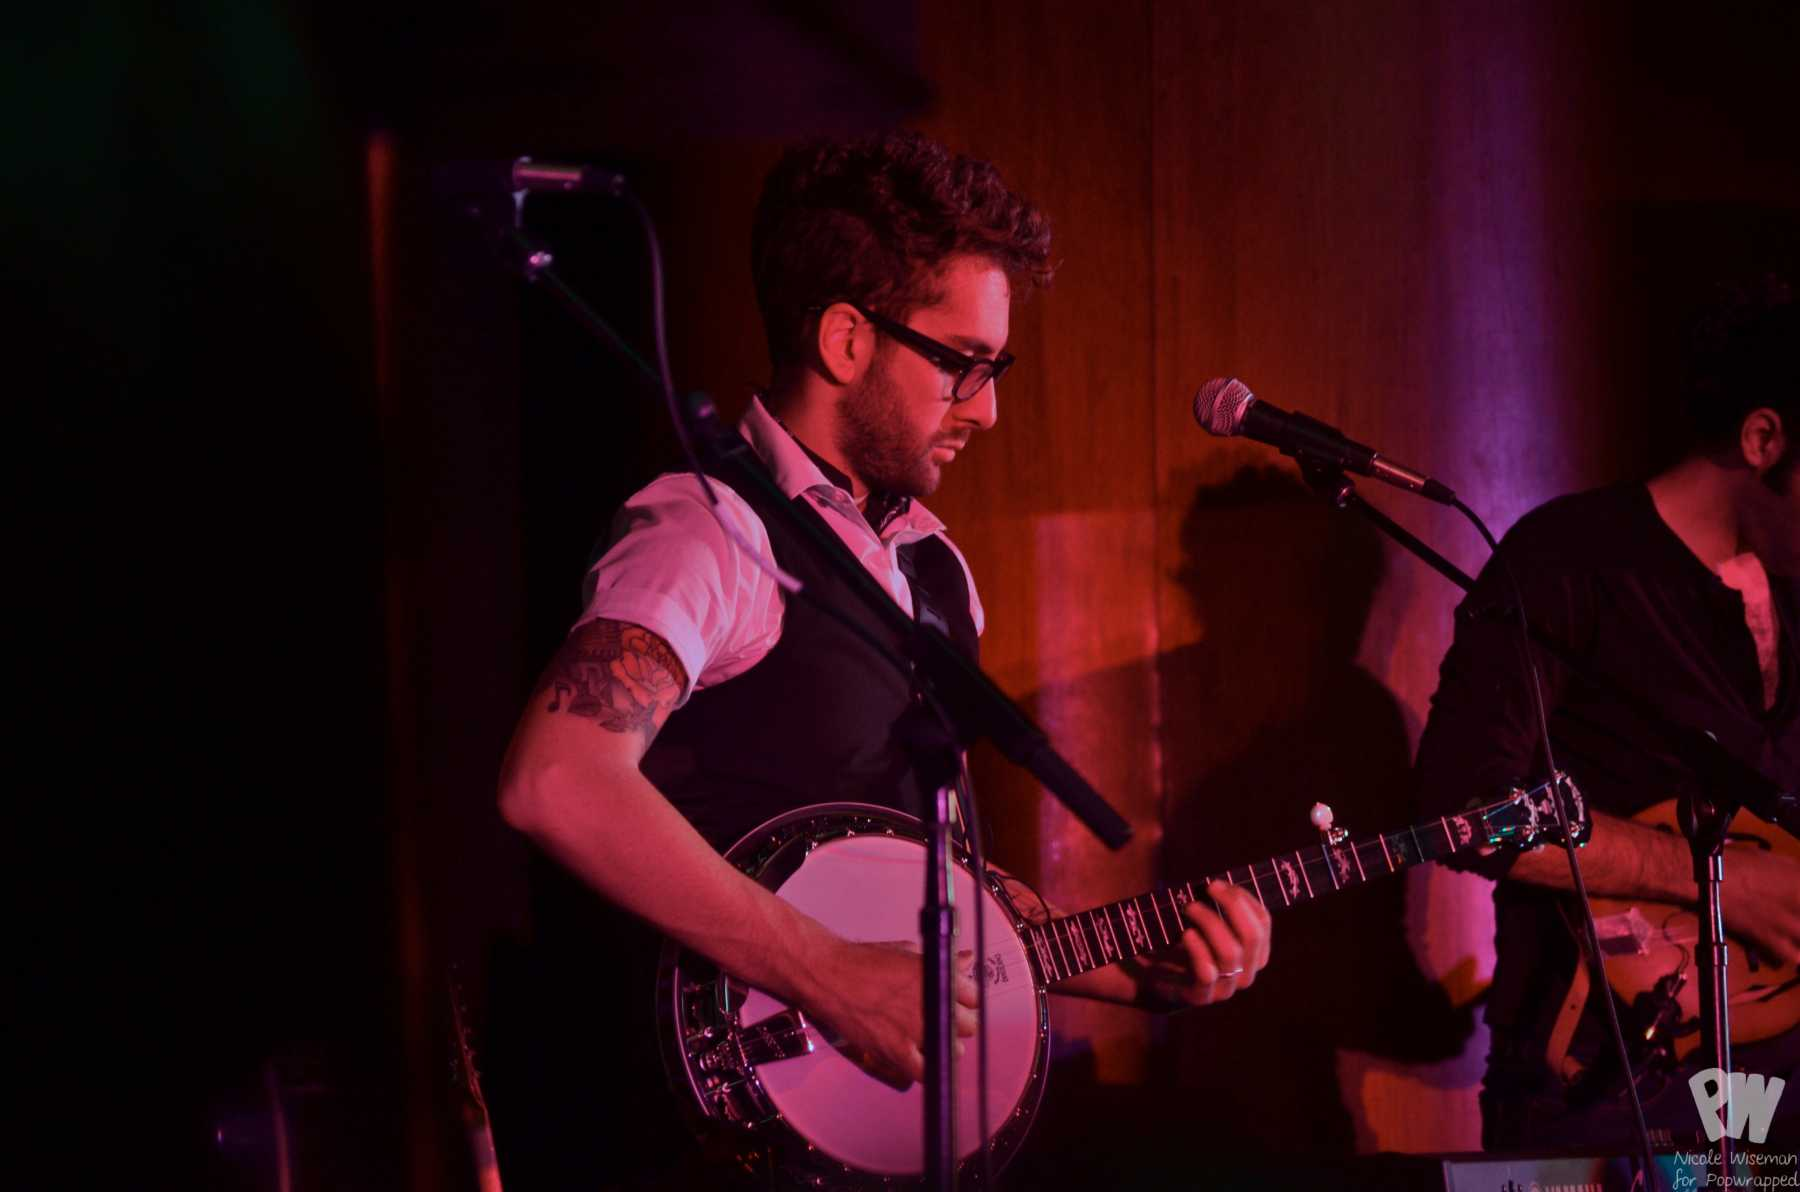 PopWrapped Exclusive: Will Champlin Sings Eye of the Pyramid Live At NAMM 2014